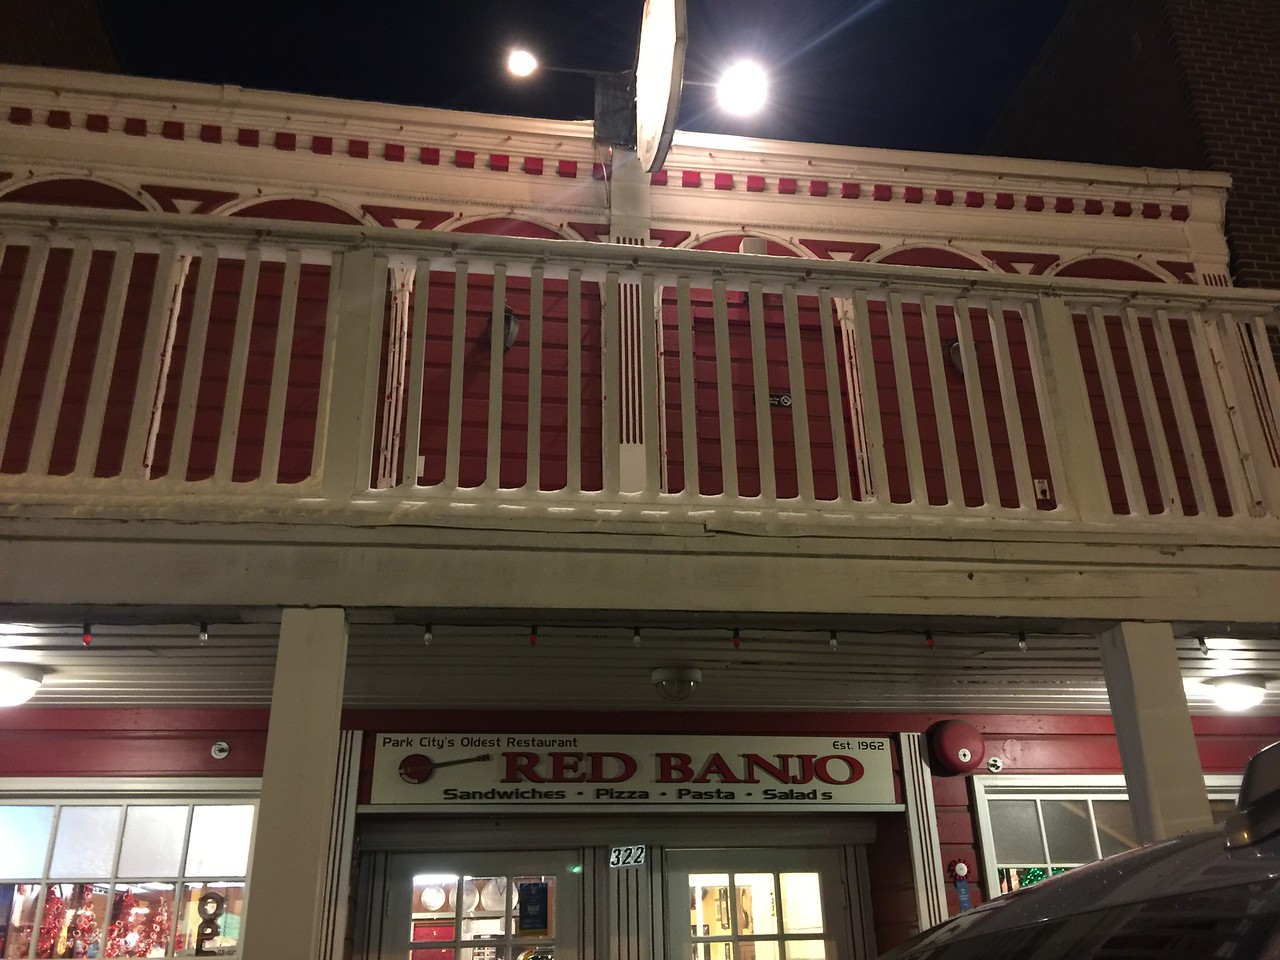 Dinner at the Red Banjo